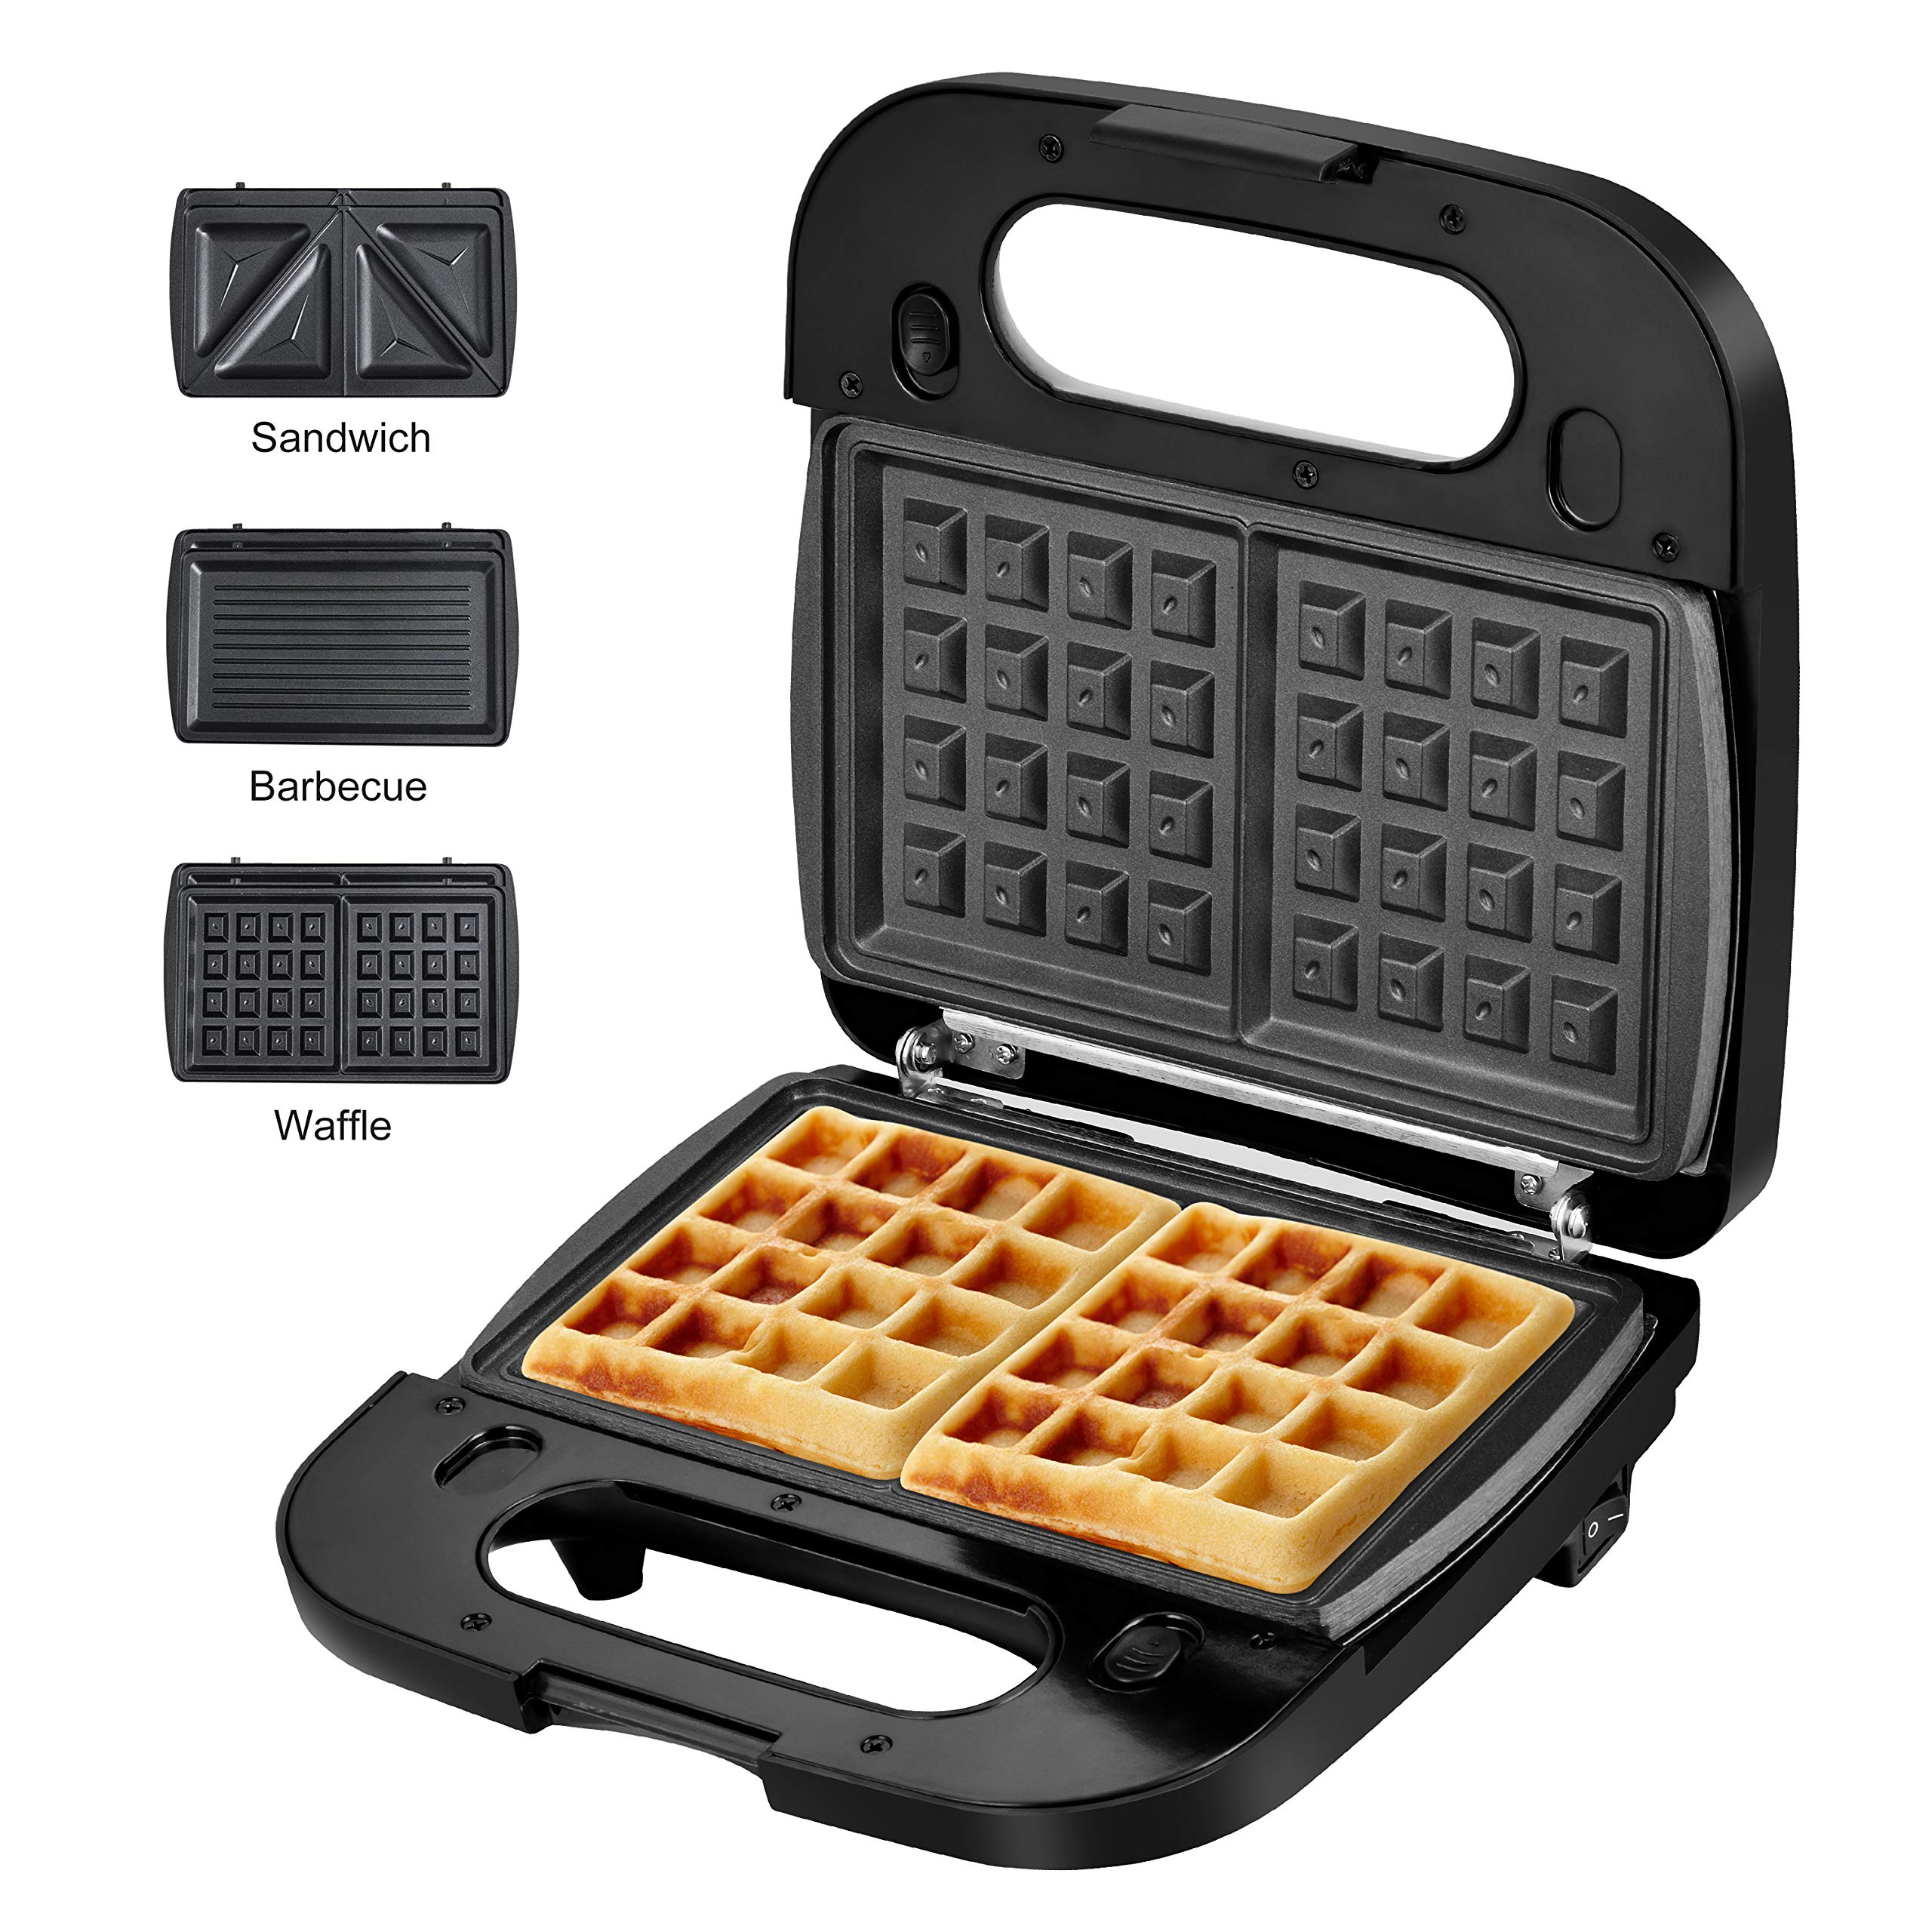 Laukingdom Waffle Maker, Sandwich Maker, Panini Press Grill,Toaster and 3-in-1 Detachable Non-stick Coating, Stainless Steel Surface and Drip Tray, Breakfast Sandwich Maker 2 Slice Black by LauKingdom